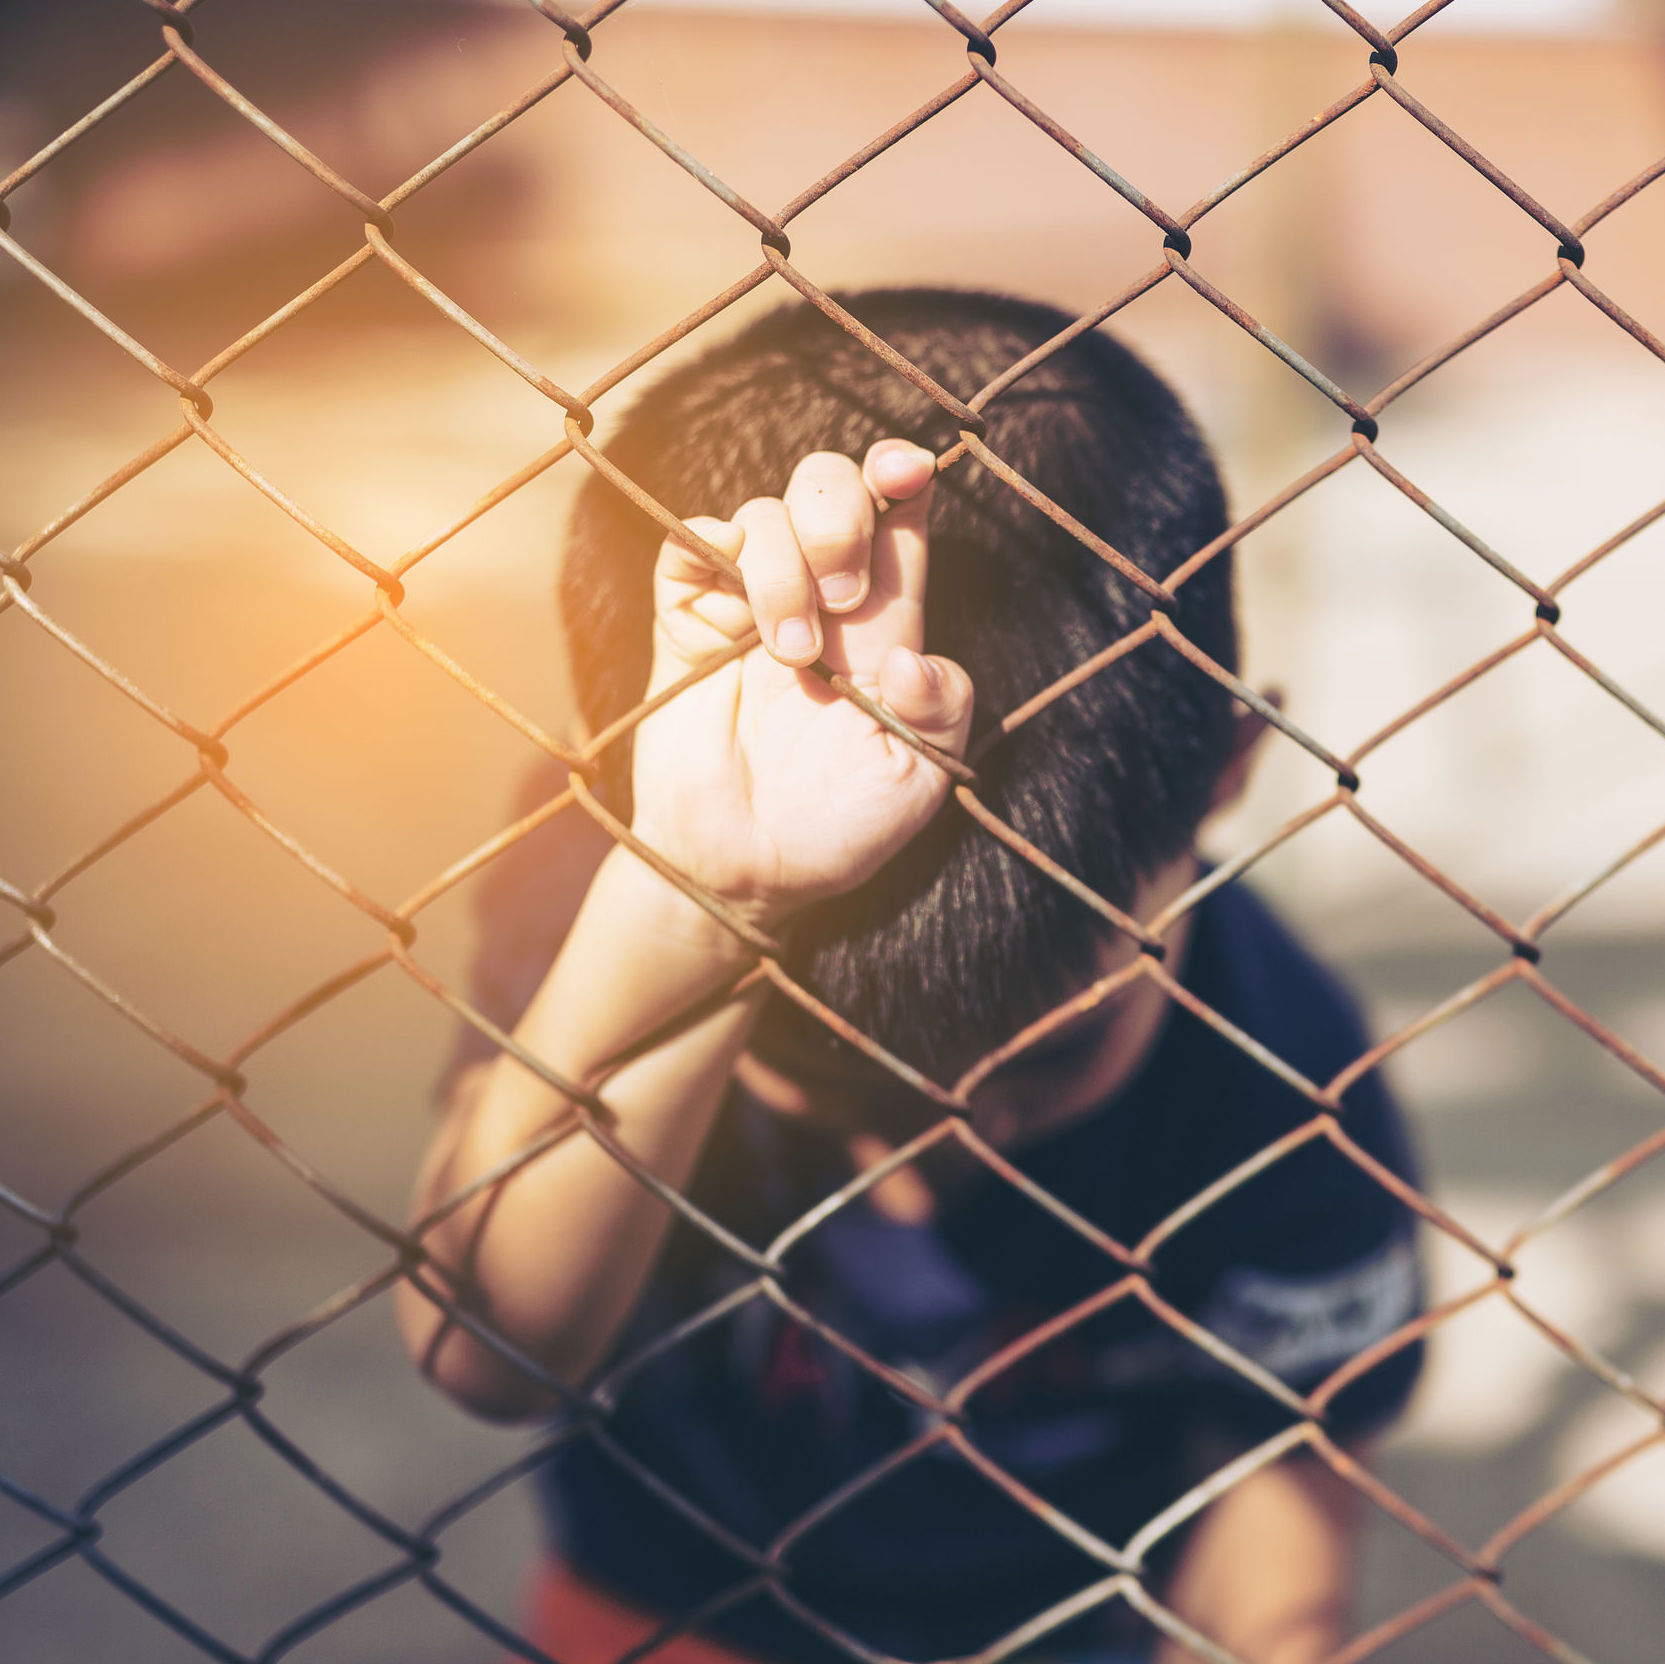 Child alone behind a fence